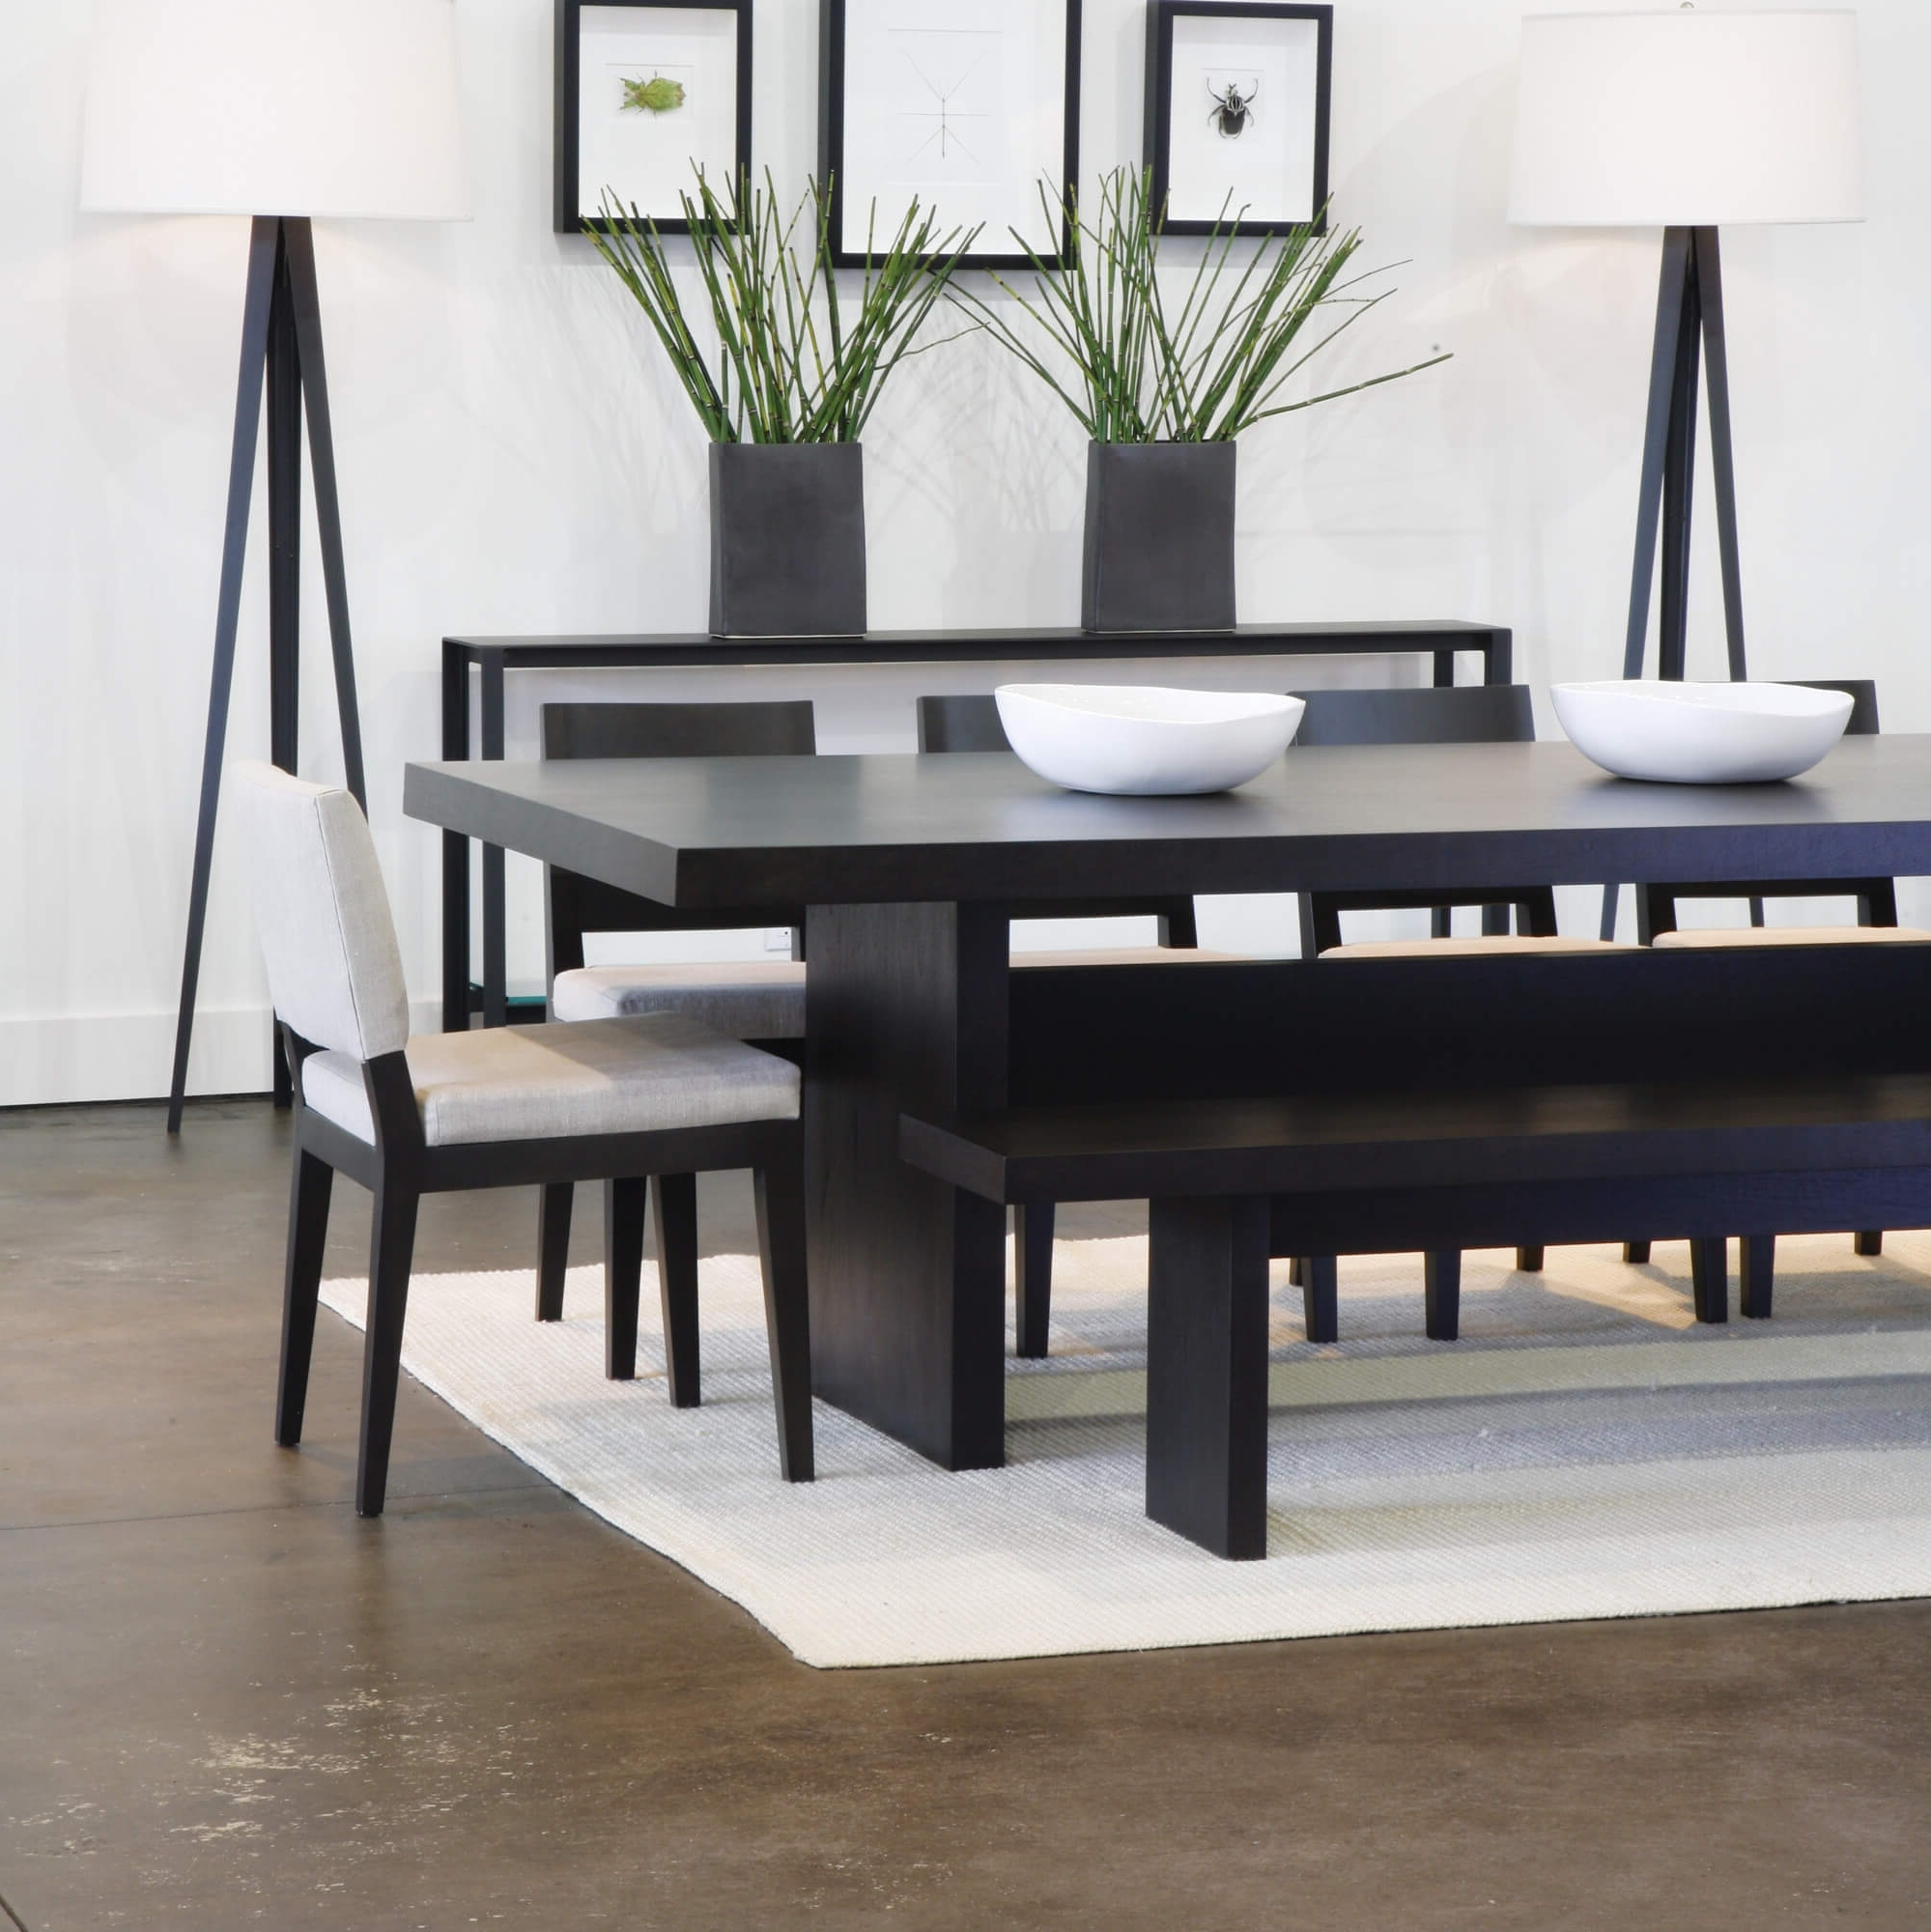 Well Known Indoor Picnic Style Dining Tables Throughout 26 Dining Room Sets (Big And Small) With Bench Seating (2018) (View 25 of 25)